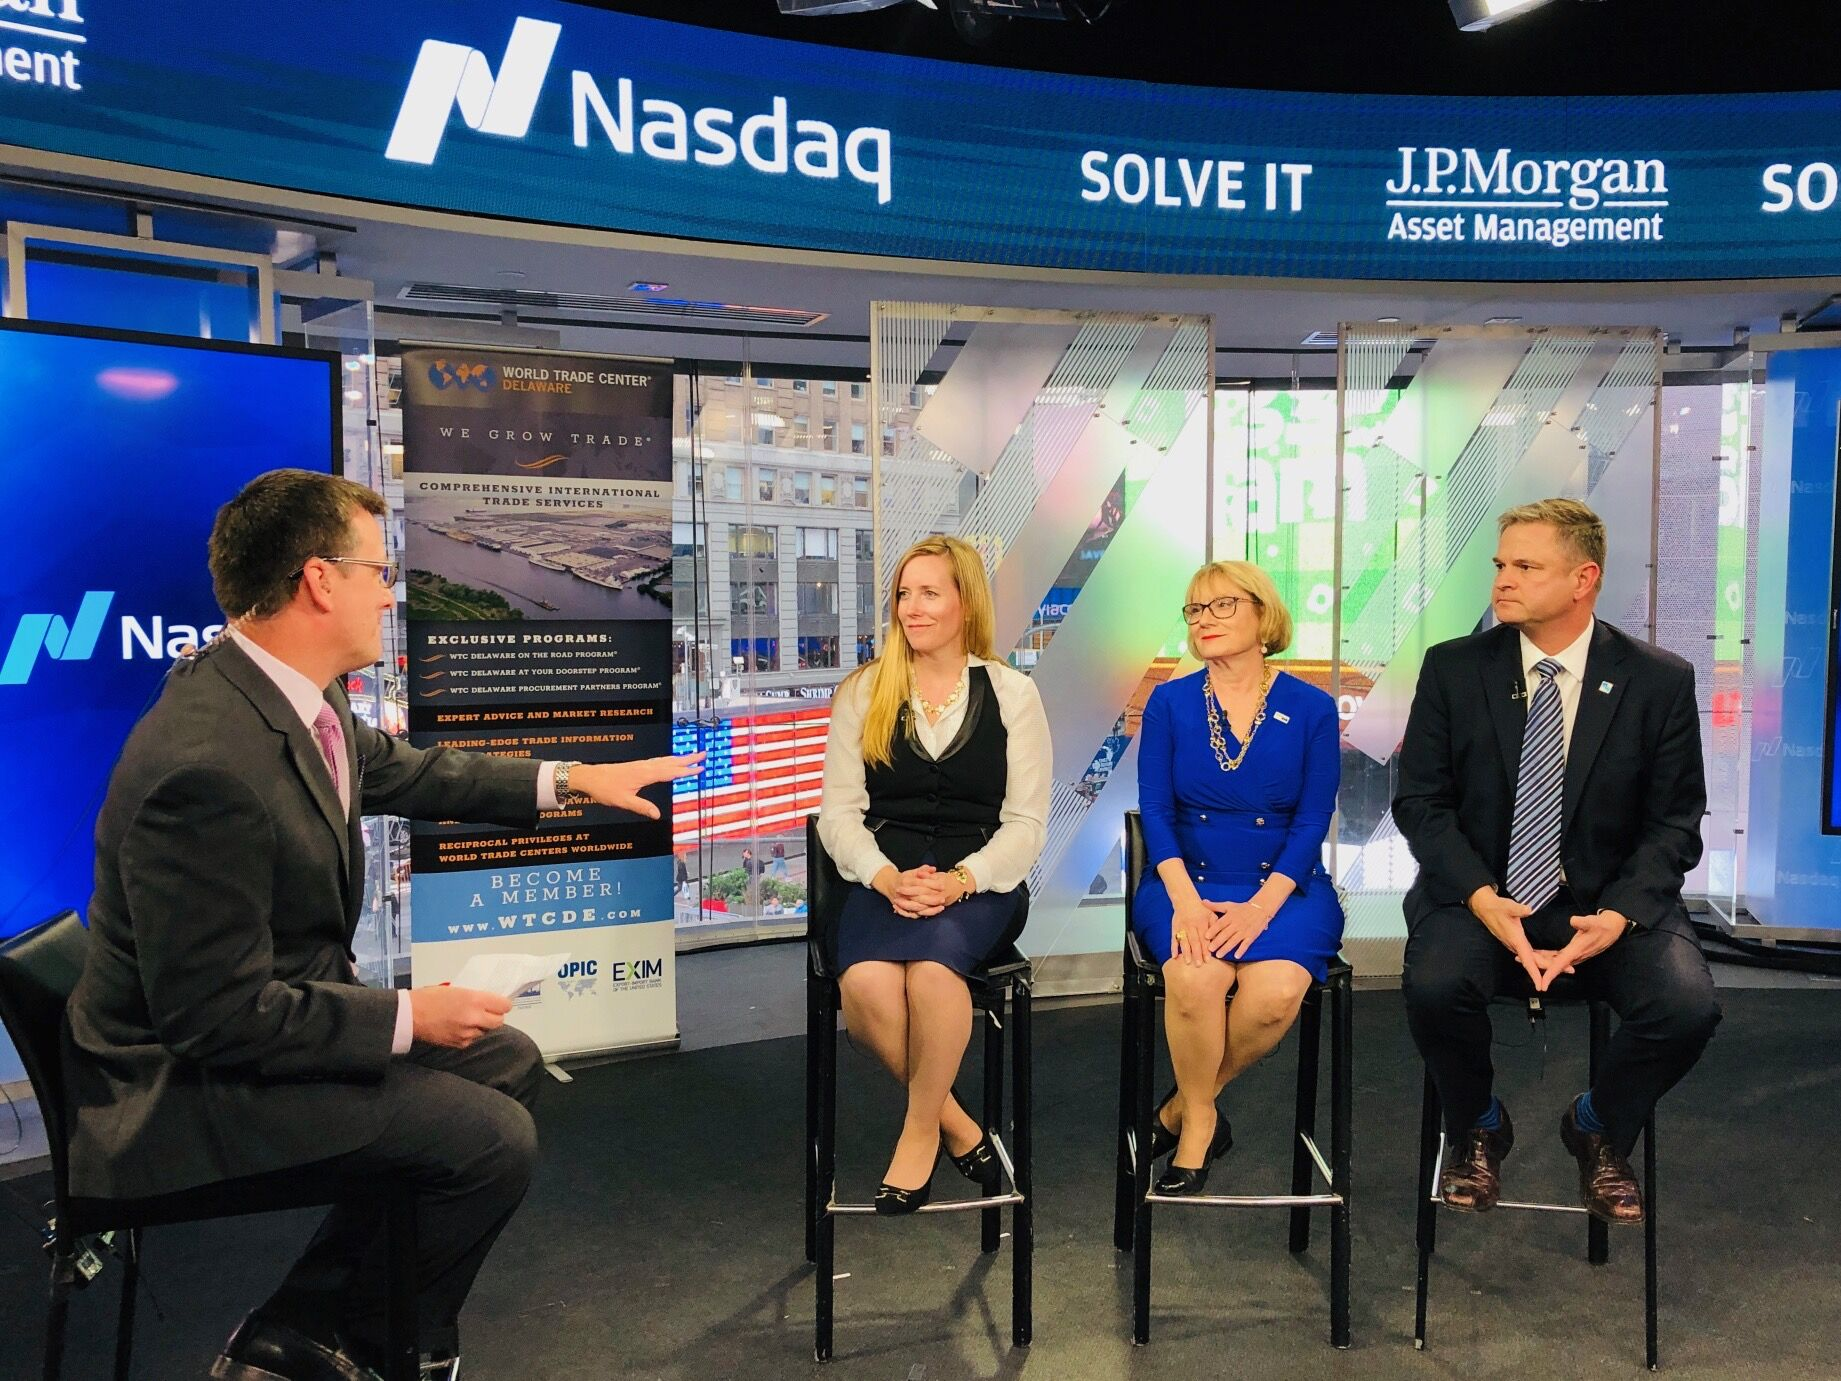 Seated under a Nasdaq banner are State Treasurer Colleen Davis, Carla Sydney Stone, and Dave Harriss. They are being interviewed by Rob Phillips